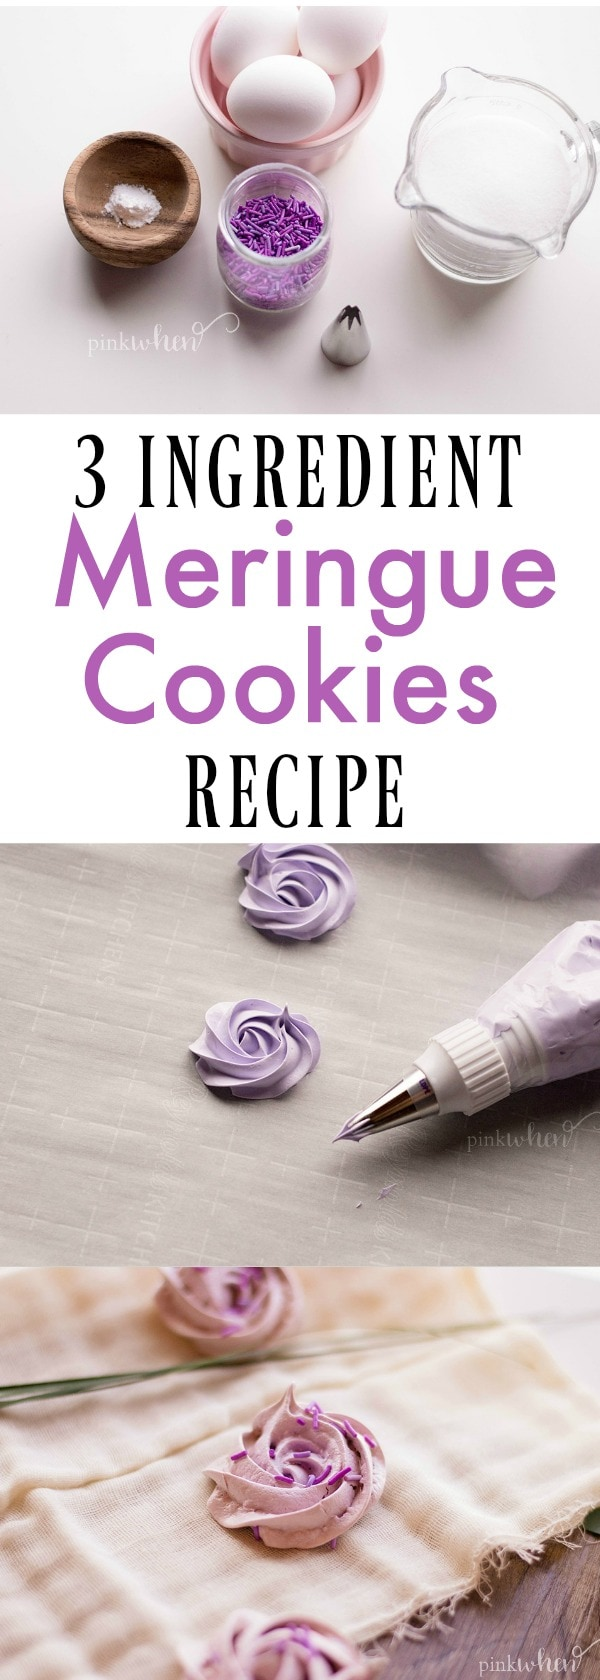 Simple 3 Ingredient Meringue Cookies Recipe #meringuecookies #cookierecipe